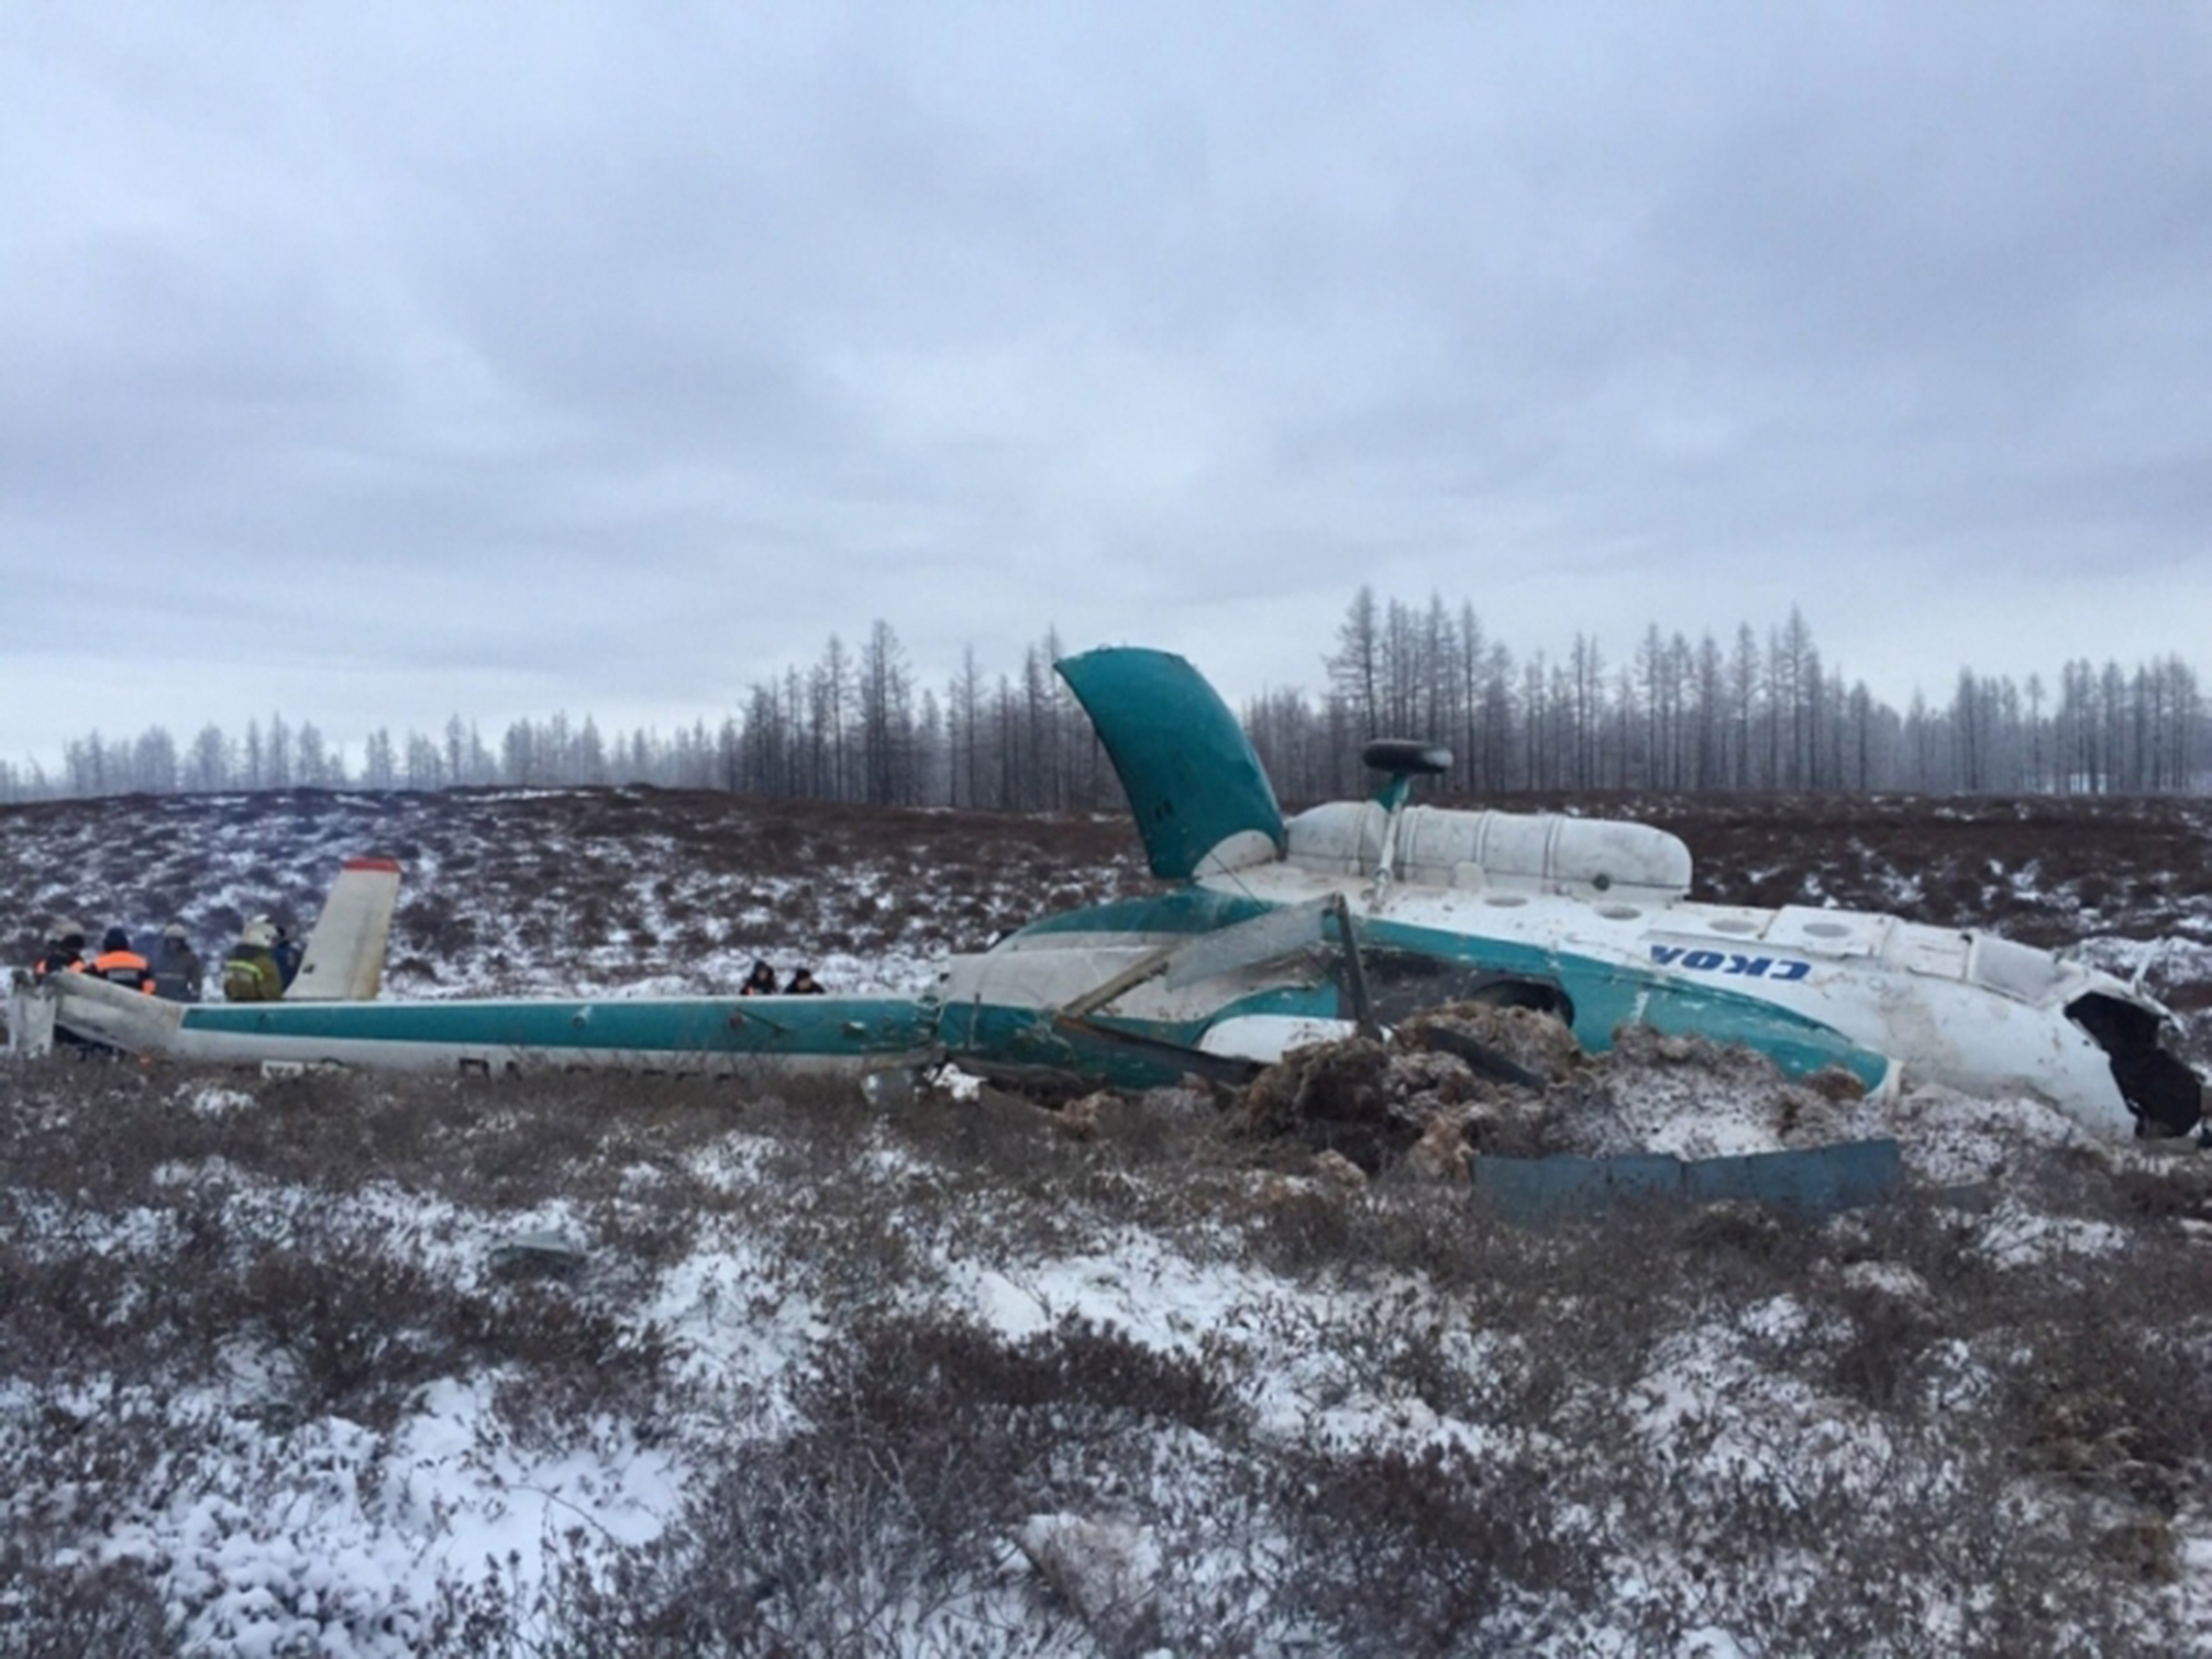 A view of the Mil Mi-8 helicopter crash site. According to preliminary data, the helicopter owned by SKOL Airline, LLC made an emergency landing on its way from Krasnoyarsk Territory to the village of Urengoy.